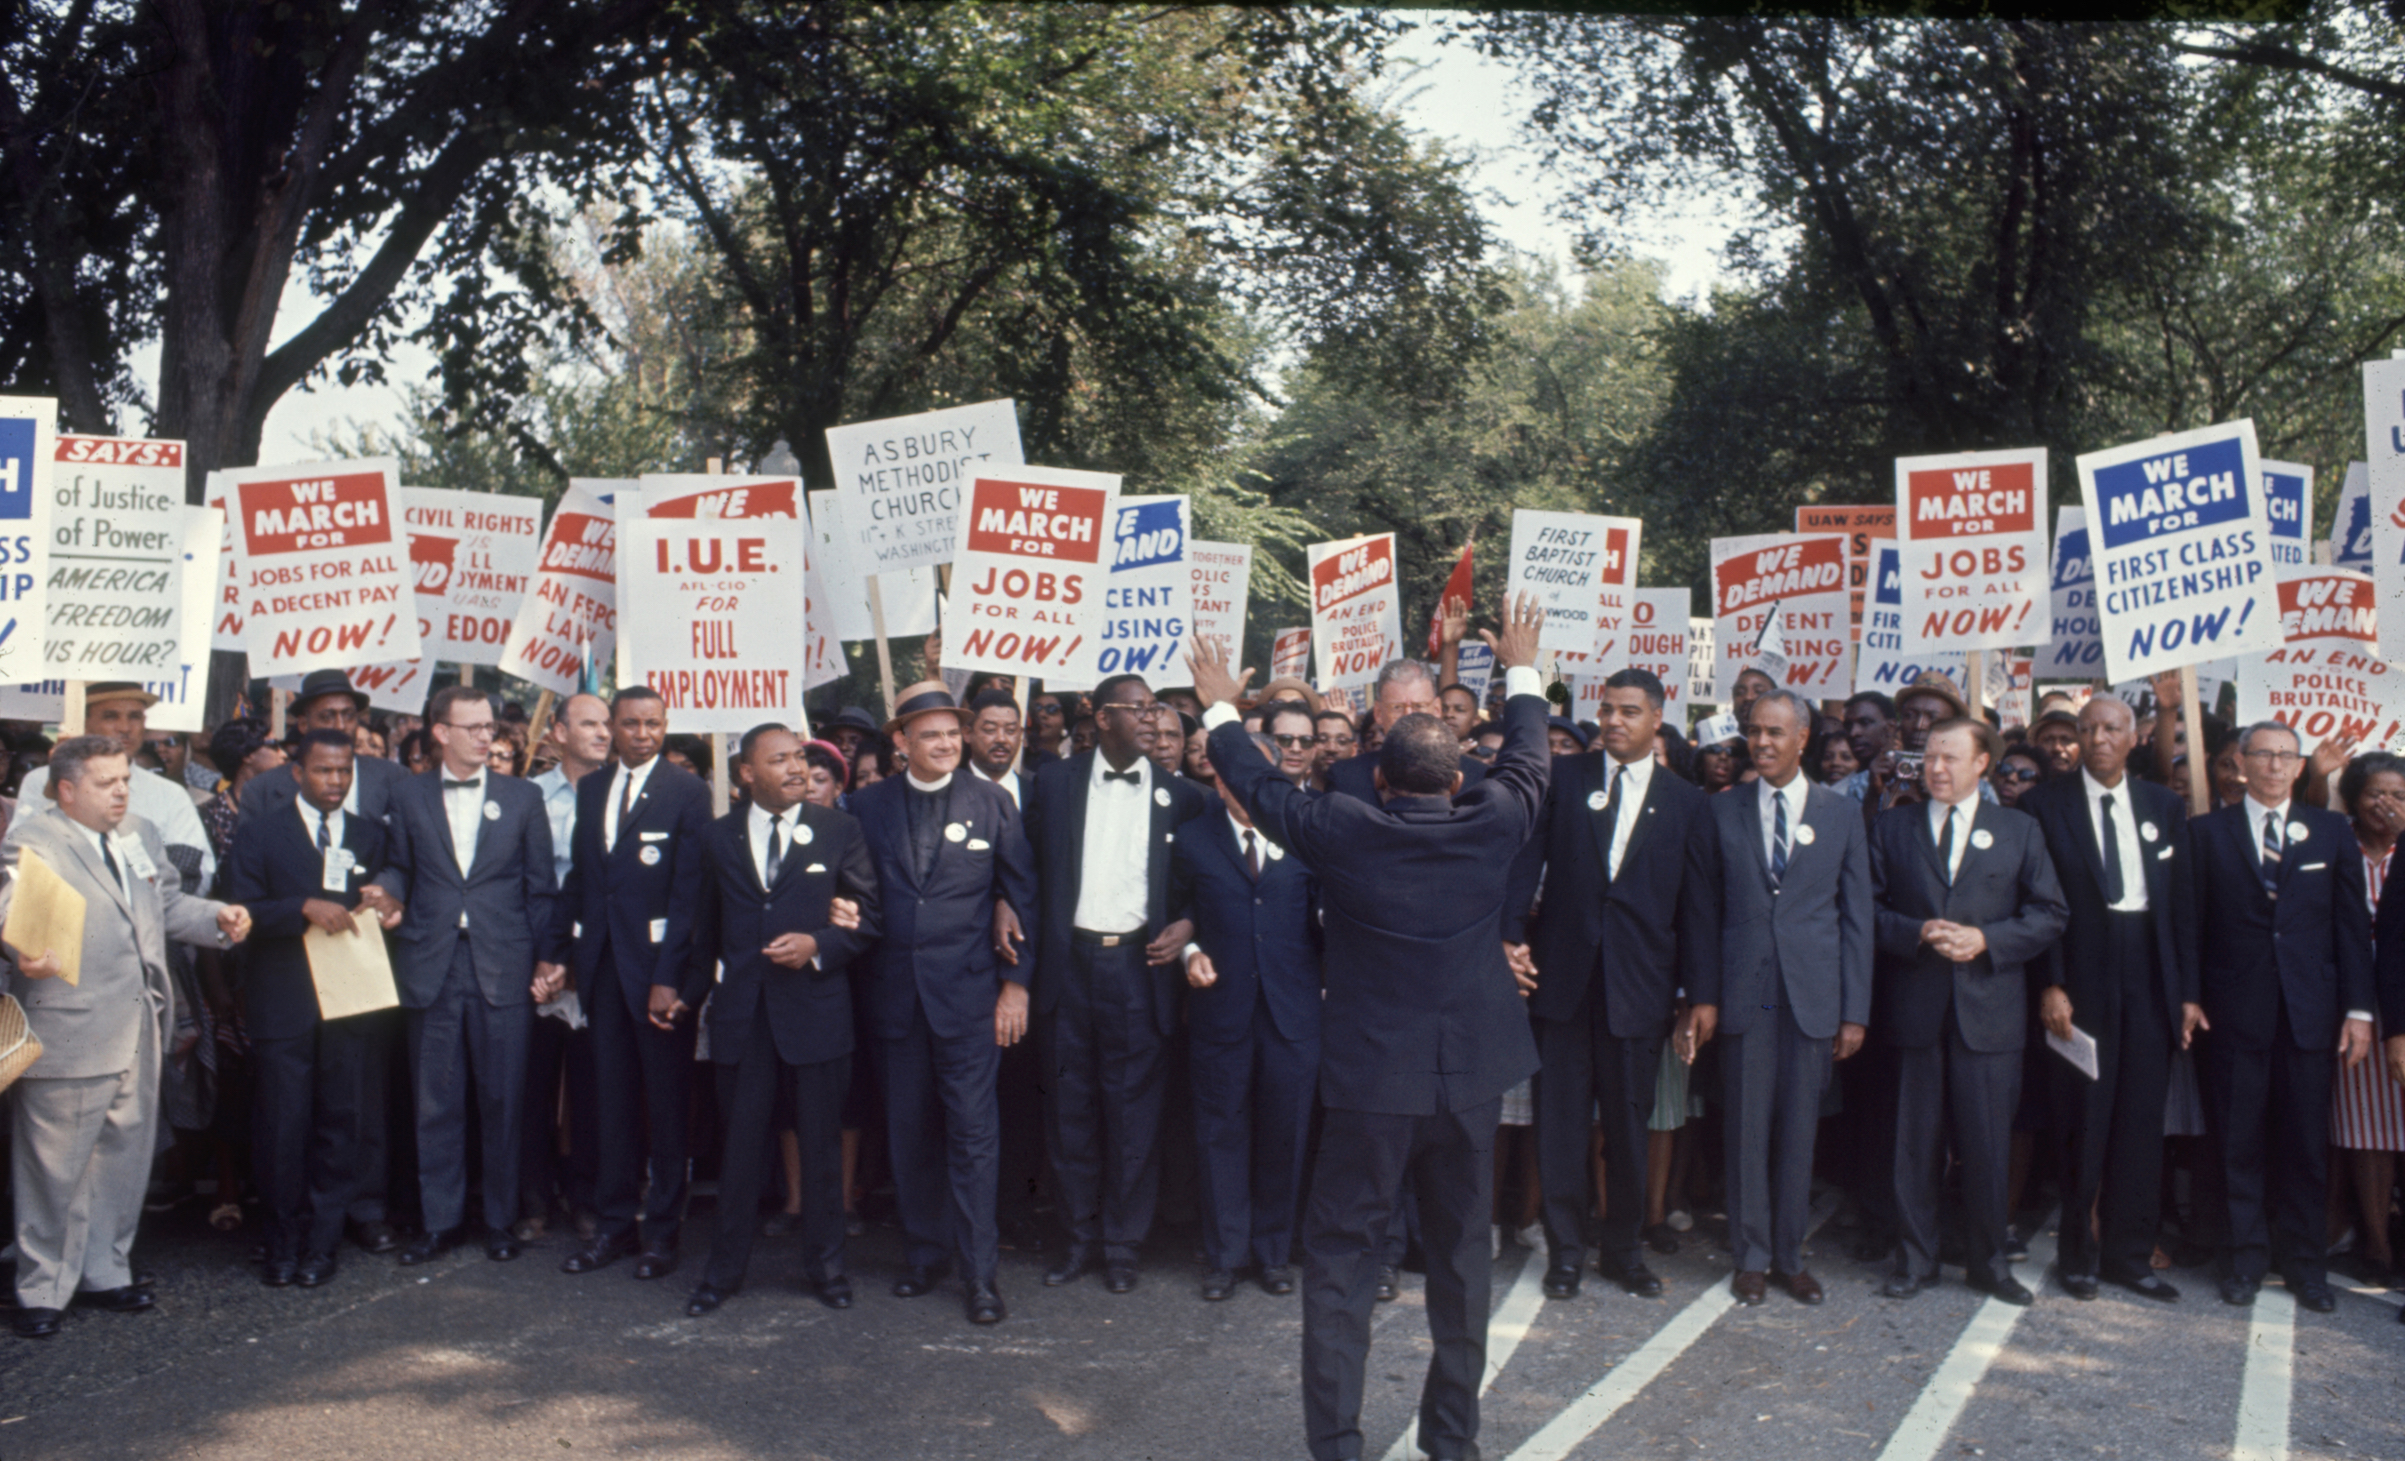 Civil Rights Activist preparing to demonstrate at the March on Washington on Aug. 28, 1963. Martin Luther King Jr. and John Lewis can both be seen on the right side of the frame.